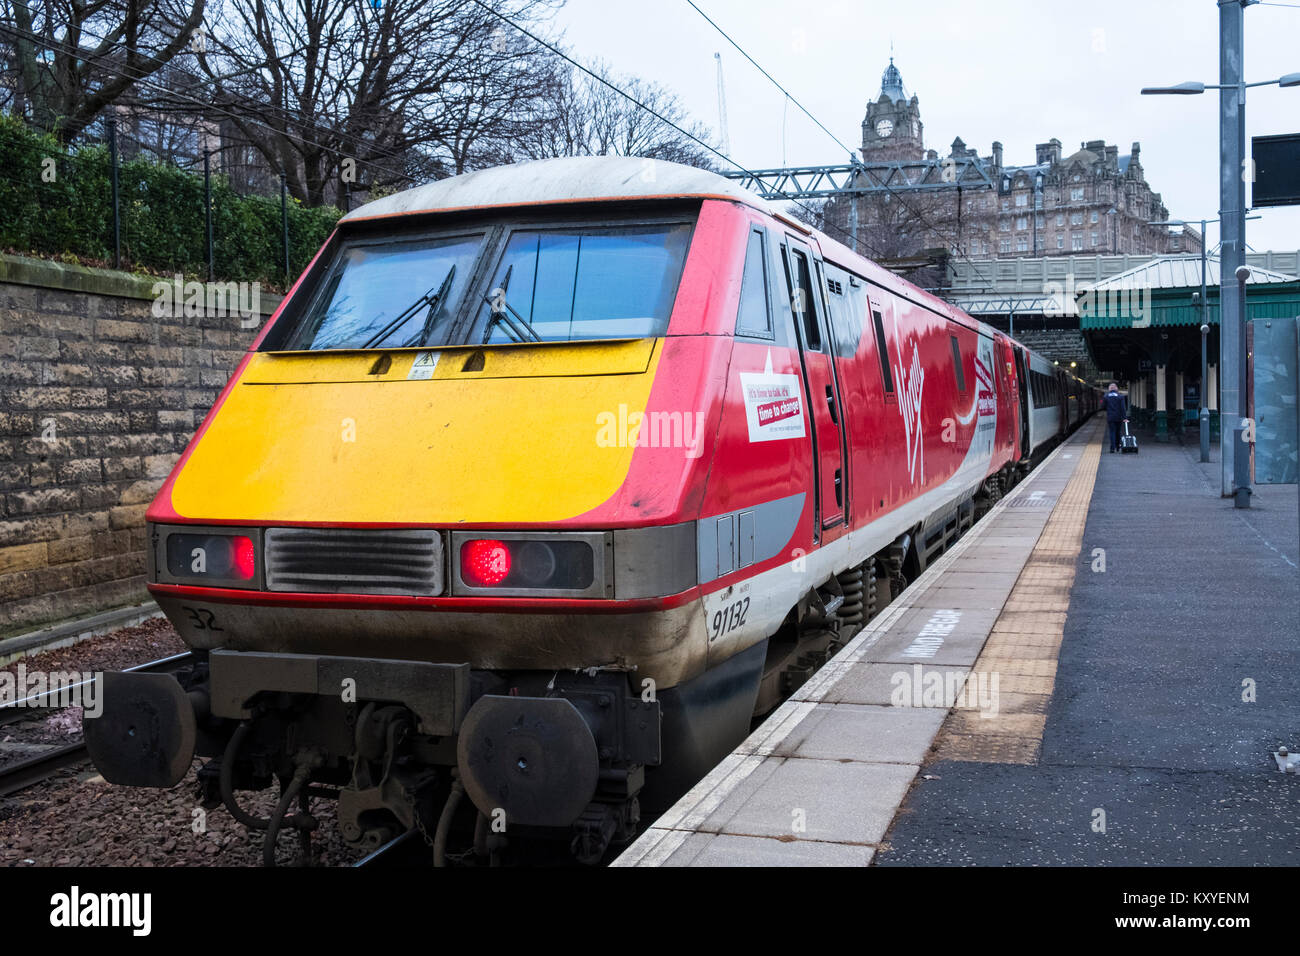 Virgin Trains locomotive from London King's Cross on East Coast Main line  at platform at Waverley Station in - Stock Image